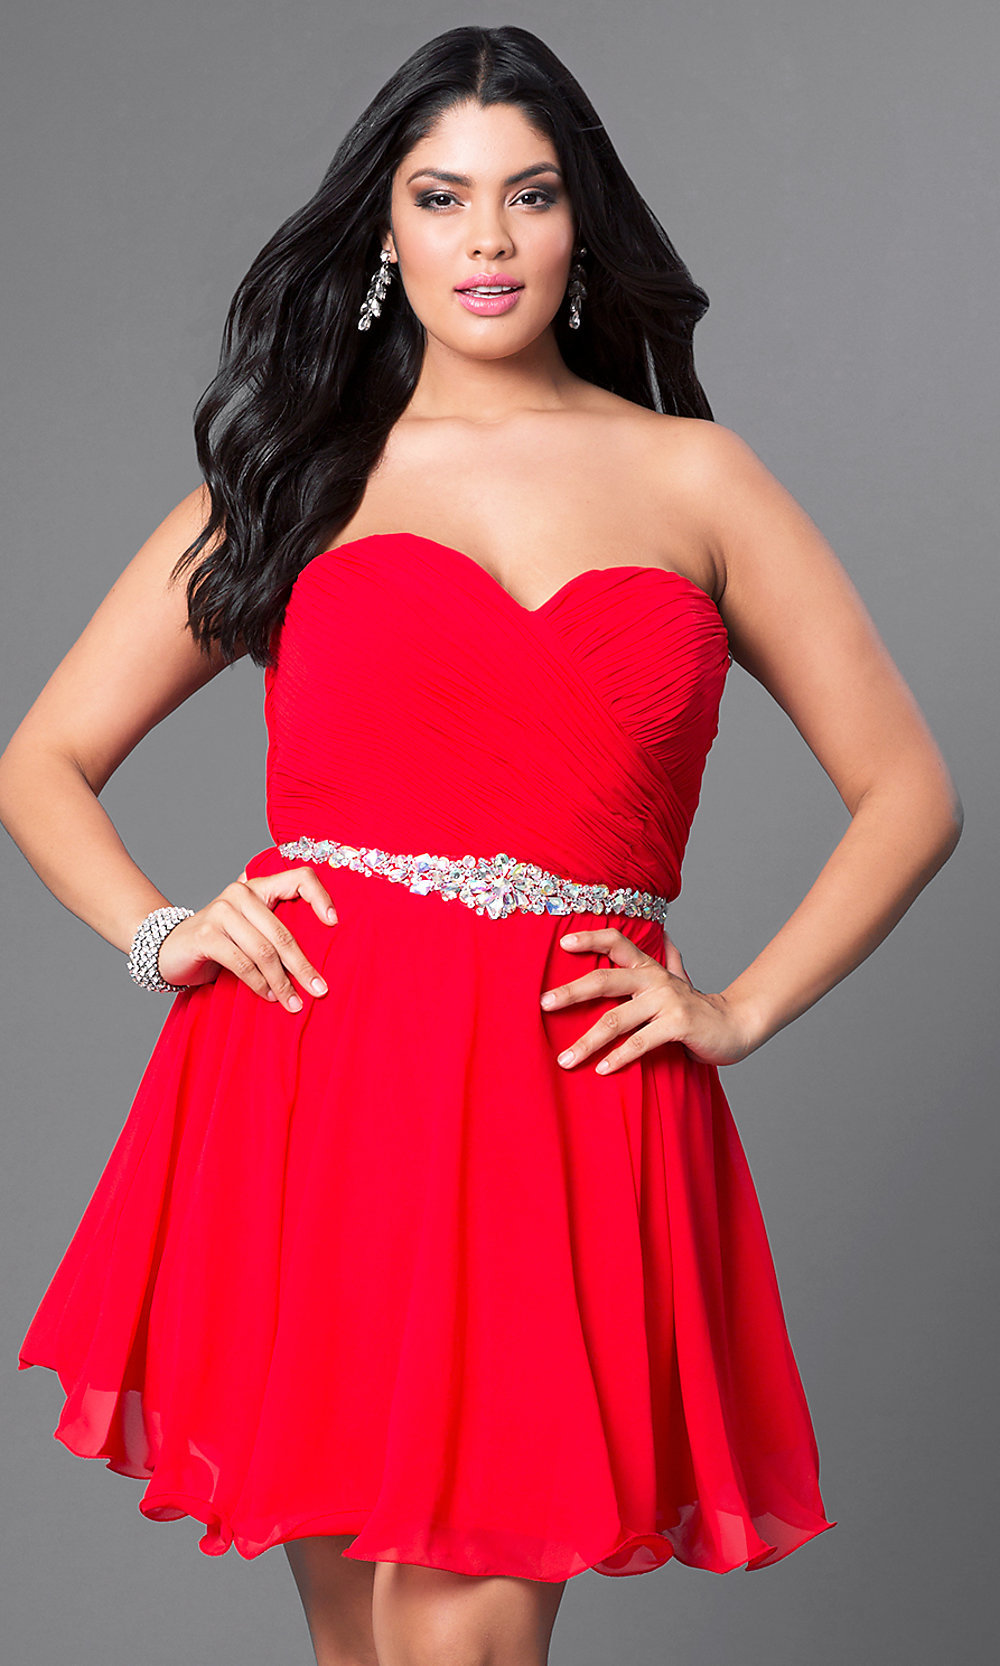 Corset Plus-Size Strapless Party Dress - PromGirl